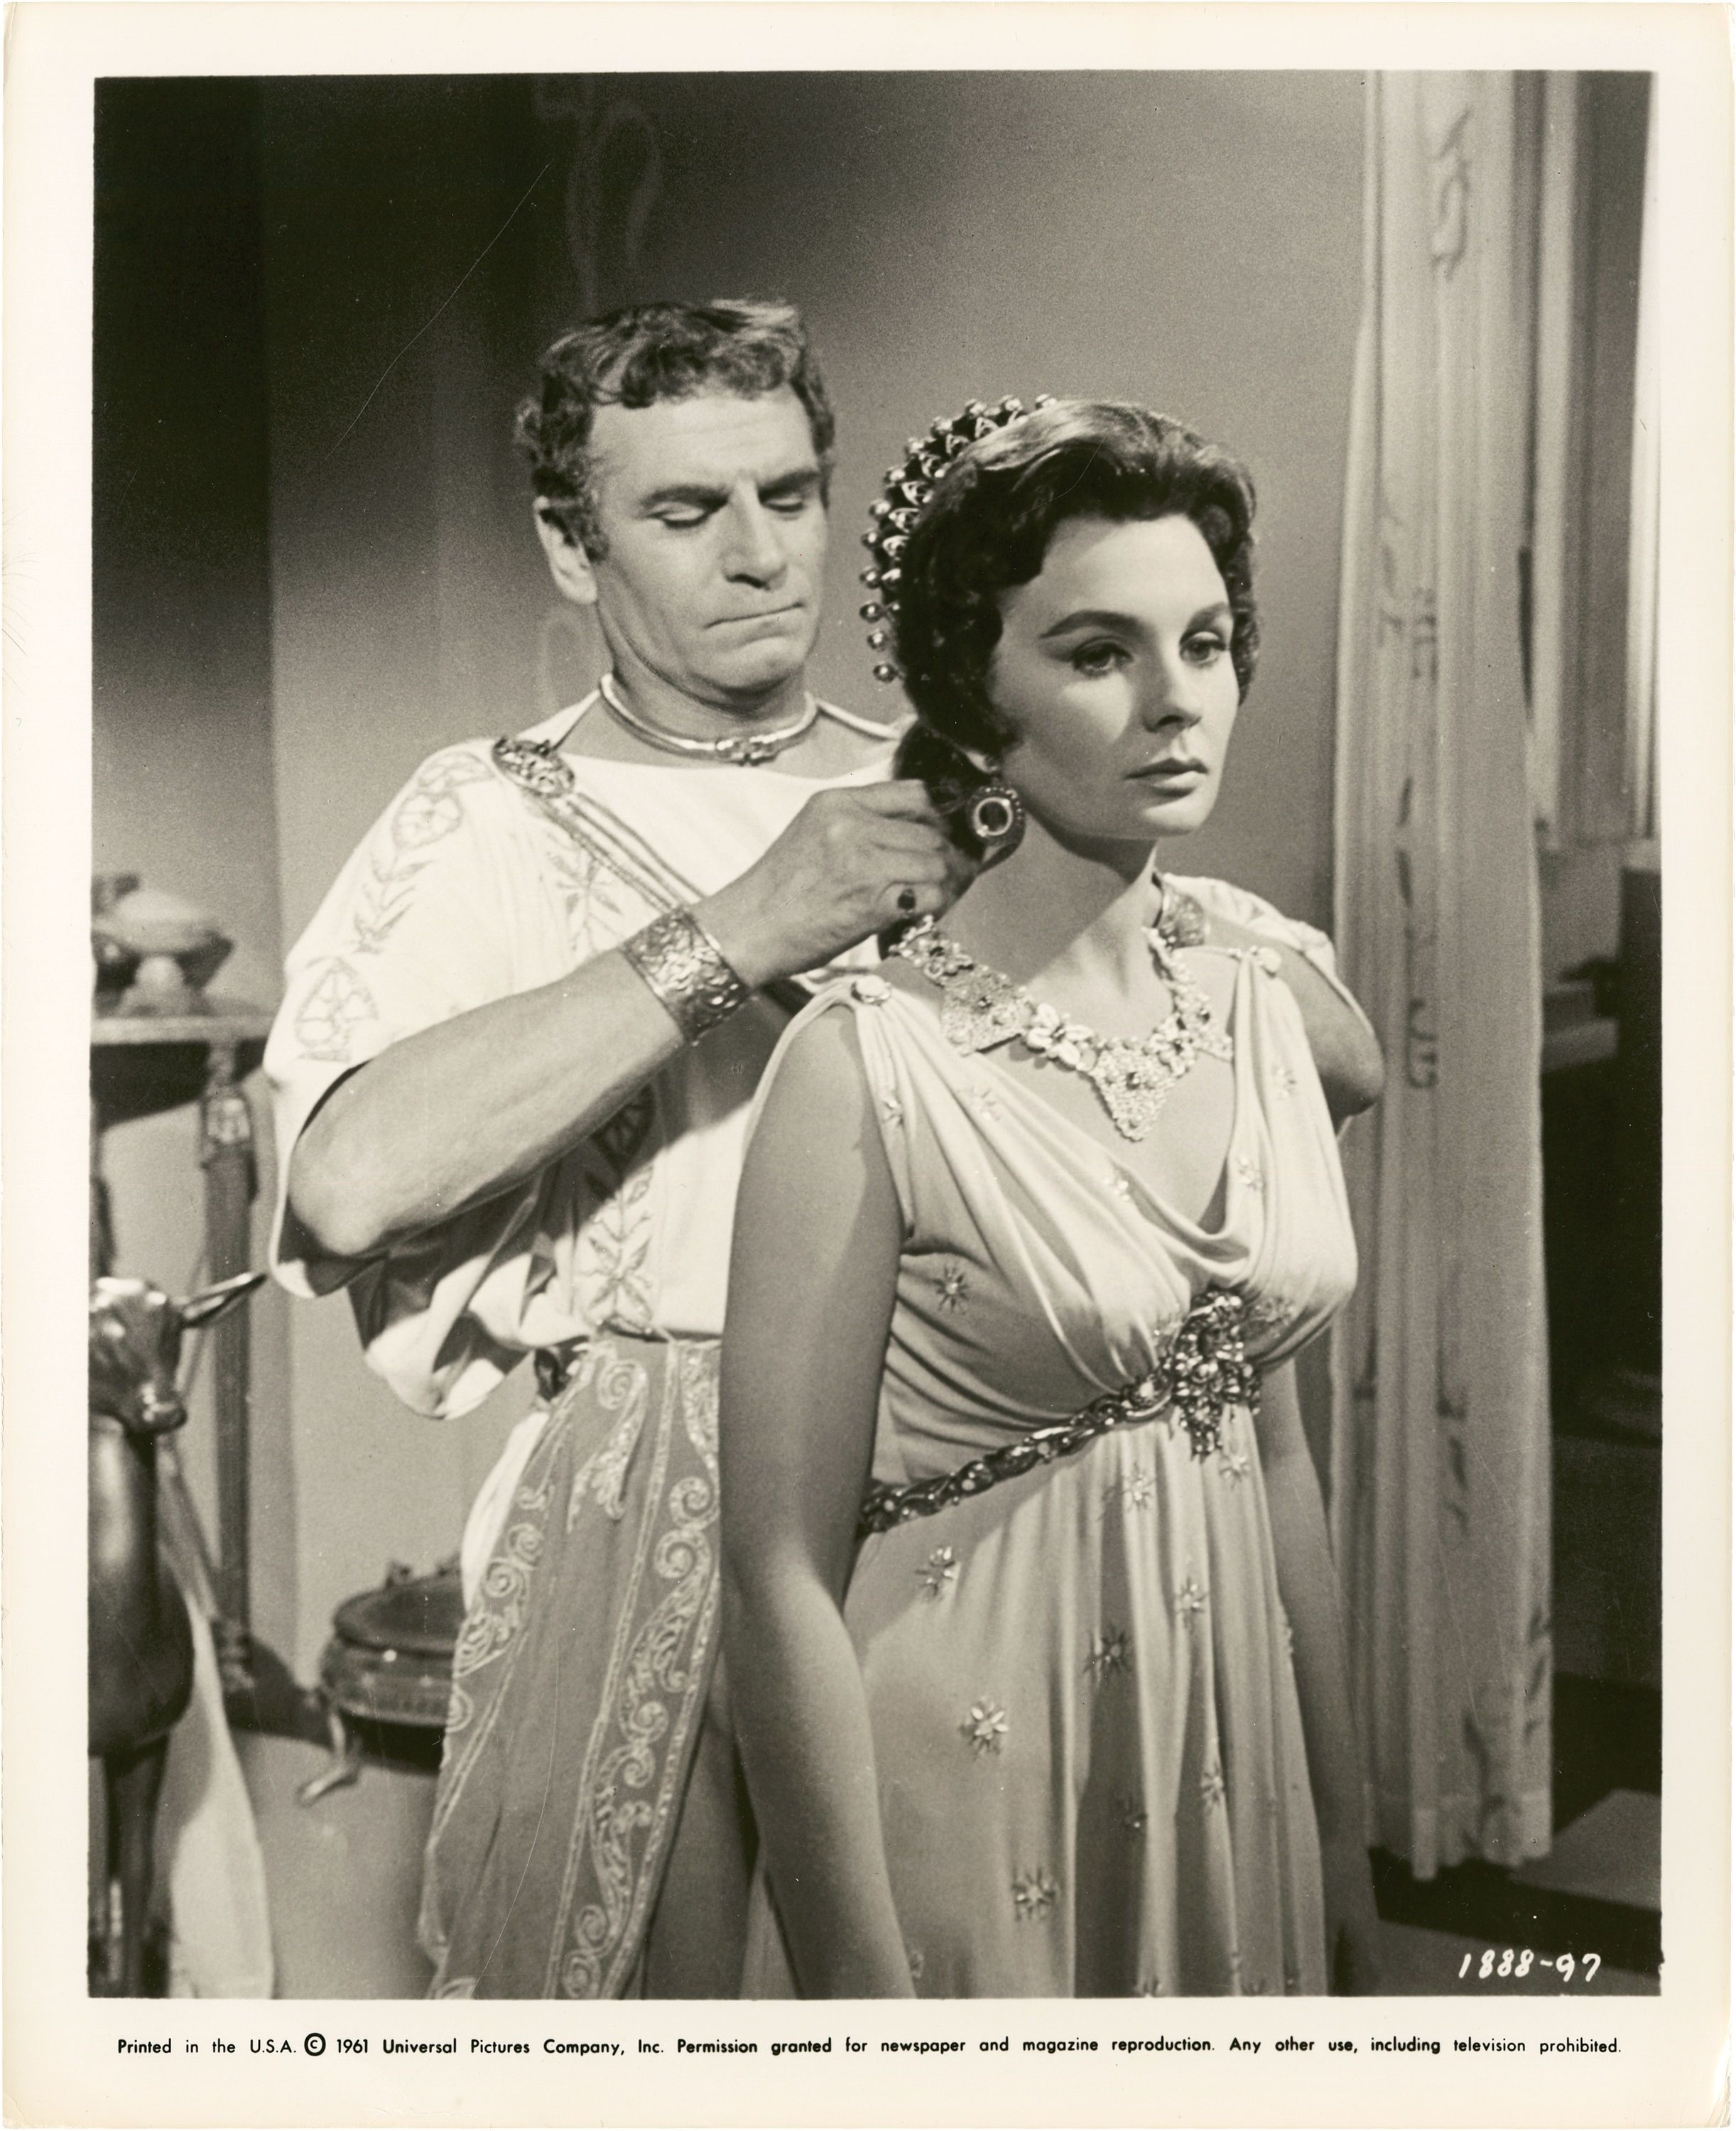 Laurence olivier spartacus quotes - Laurence Olivier And Jean Simmons In Spartacus Directed By Stanley Kubrick 1960